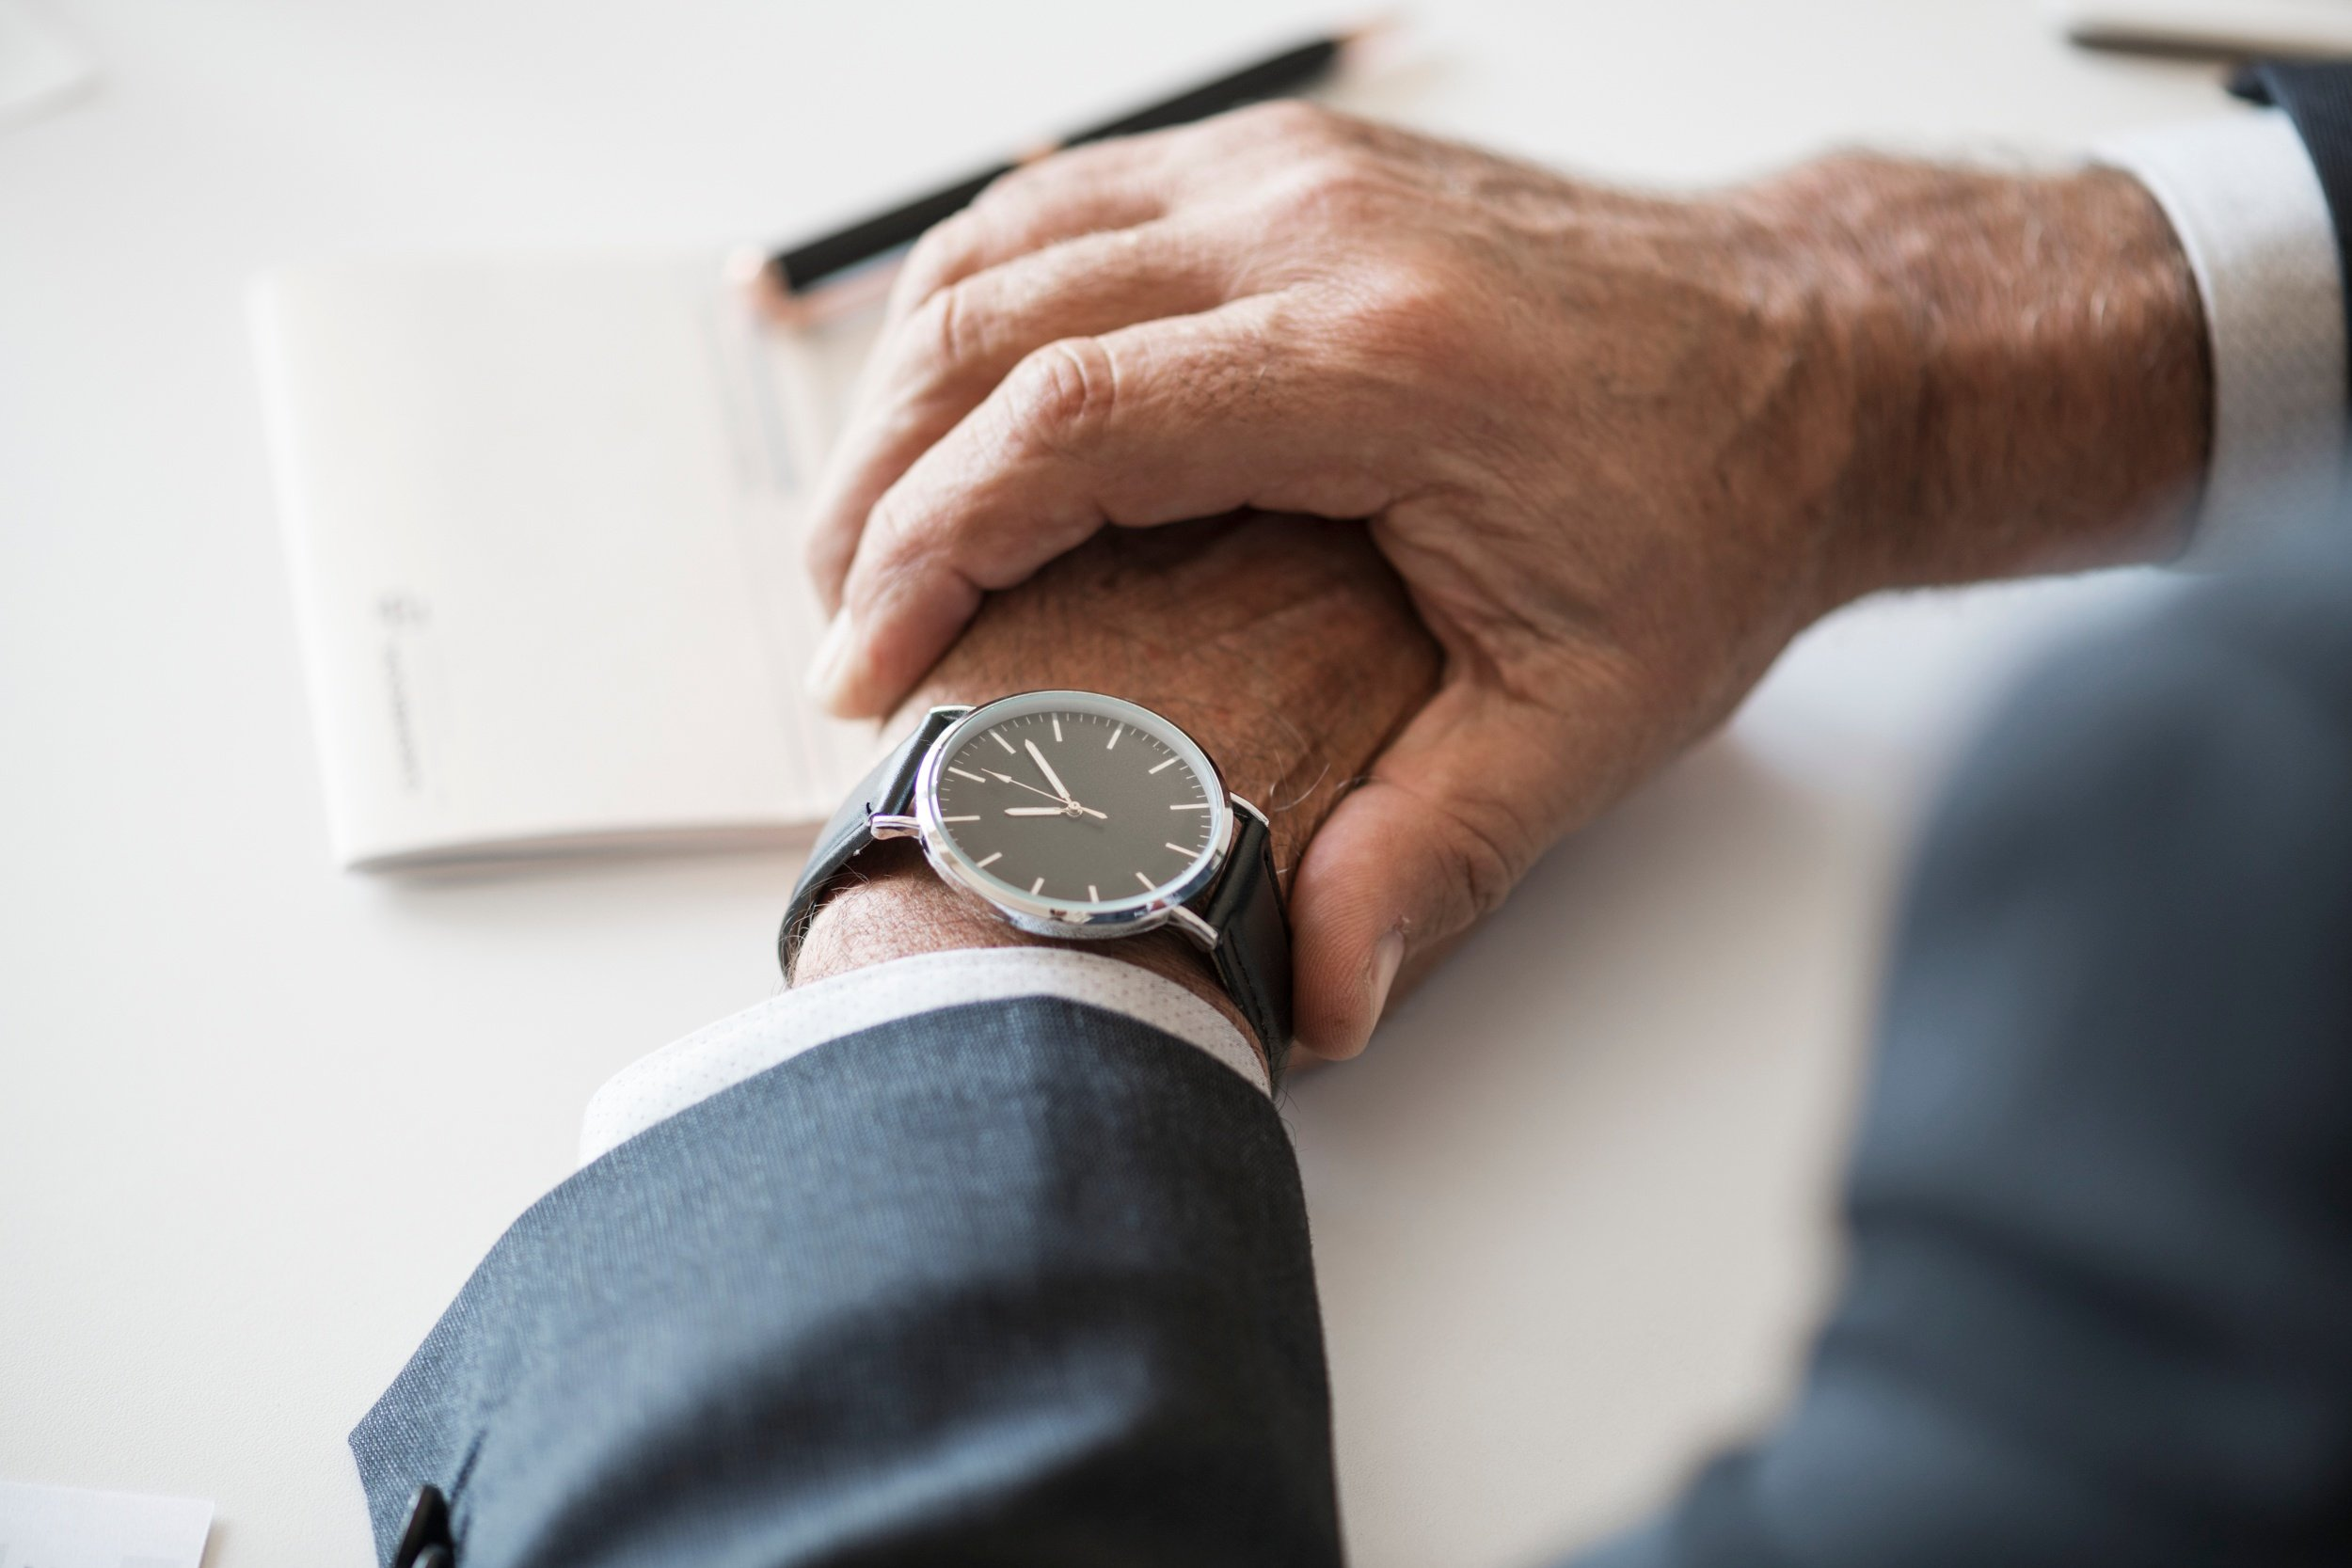 An image focused on a wristwatch, on the wrist of a person wearing a business suit. Image source: https://stocksnap.io/photo/VL9LPY5XWL